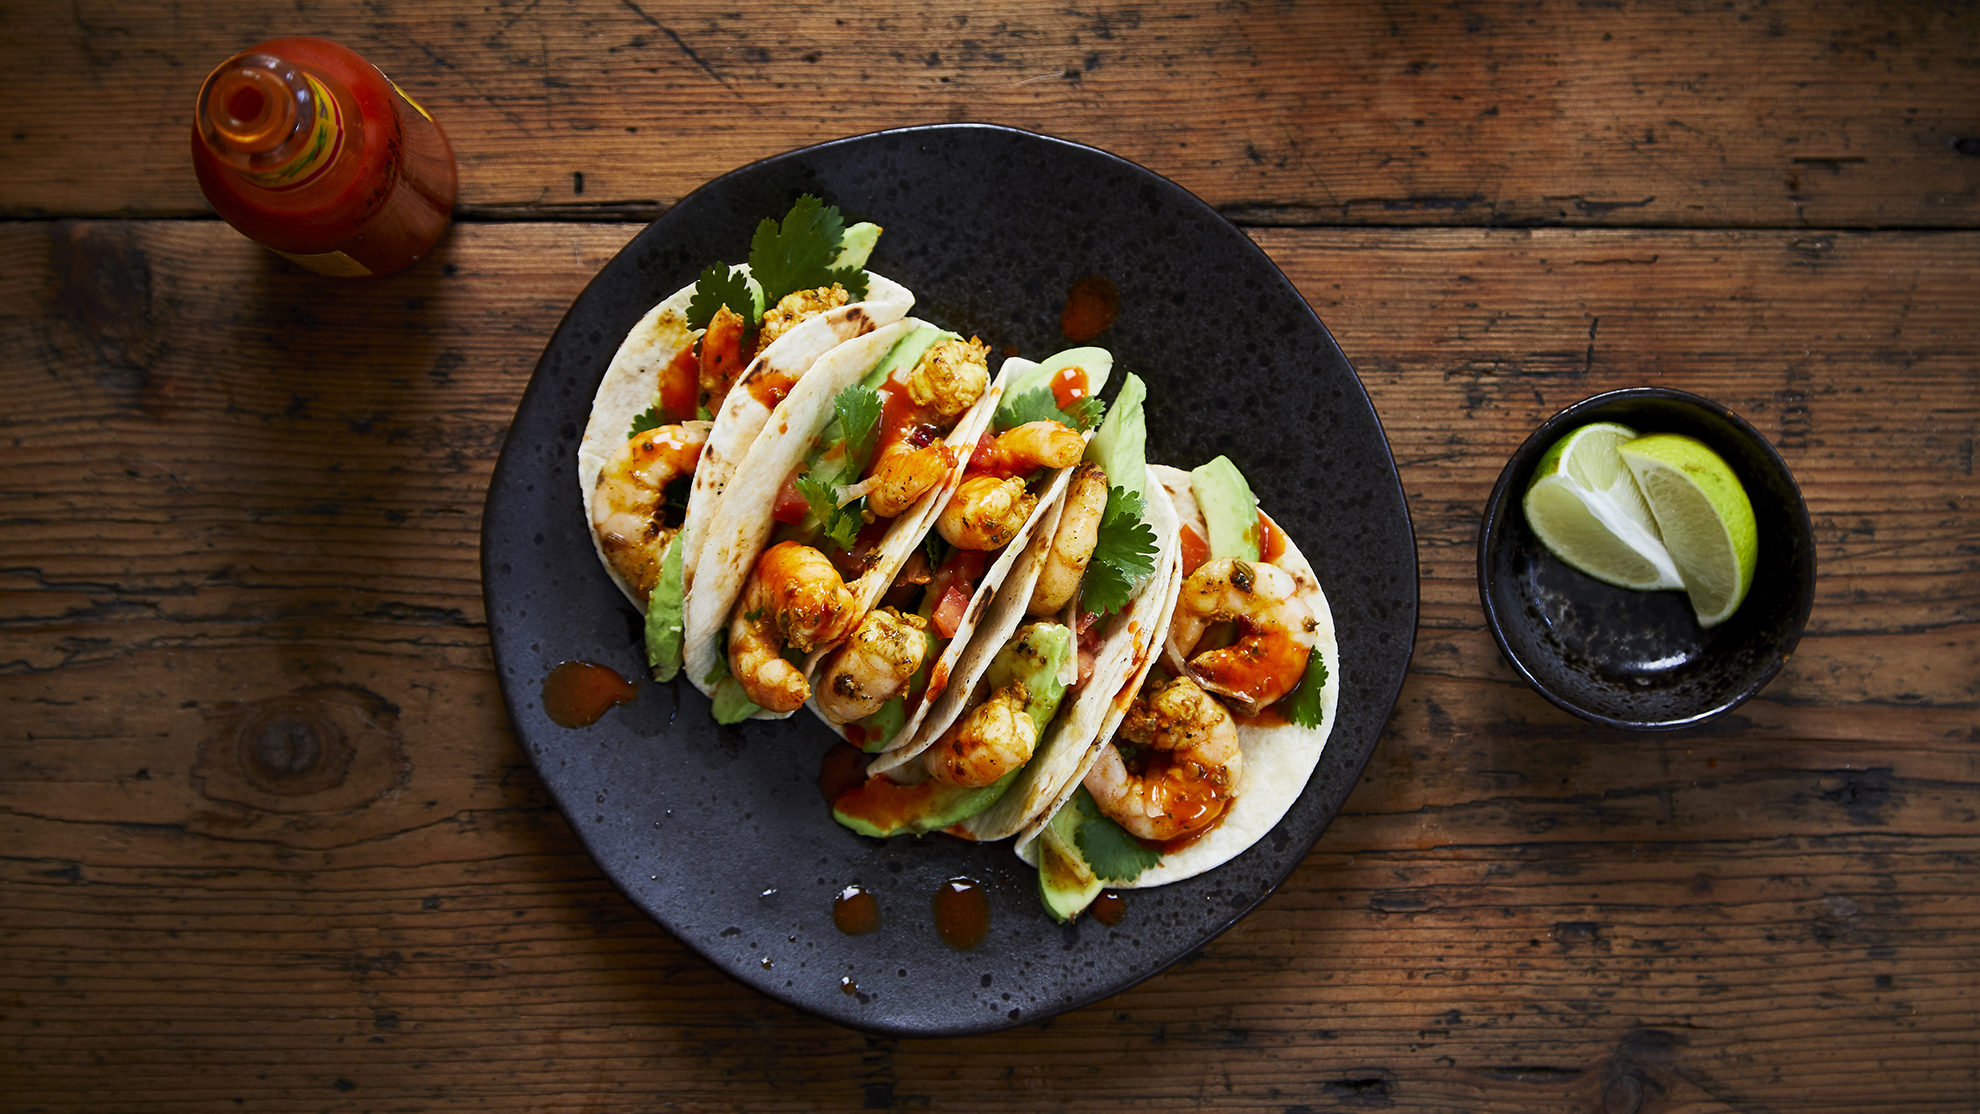 George Coppock Photography Commercial Advertising & Brands Leeds Prawn Tacos.jpg